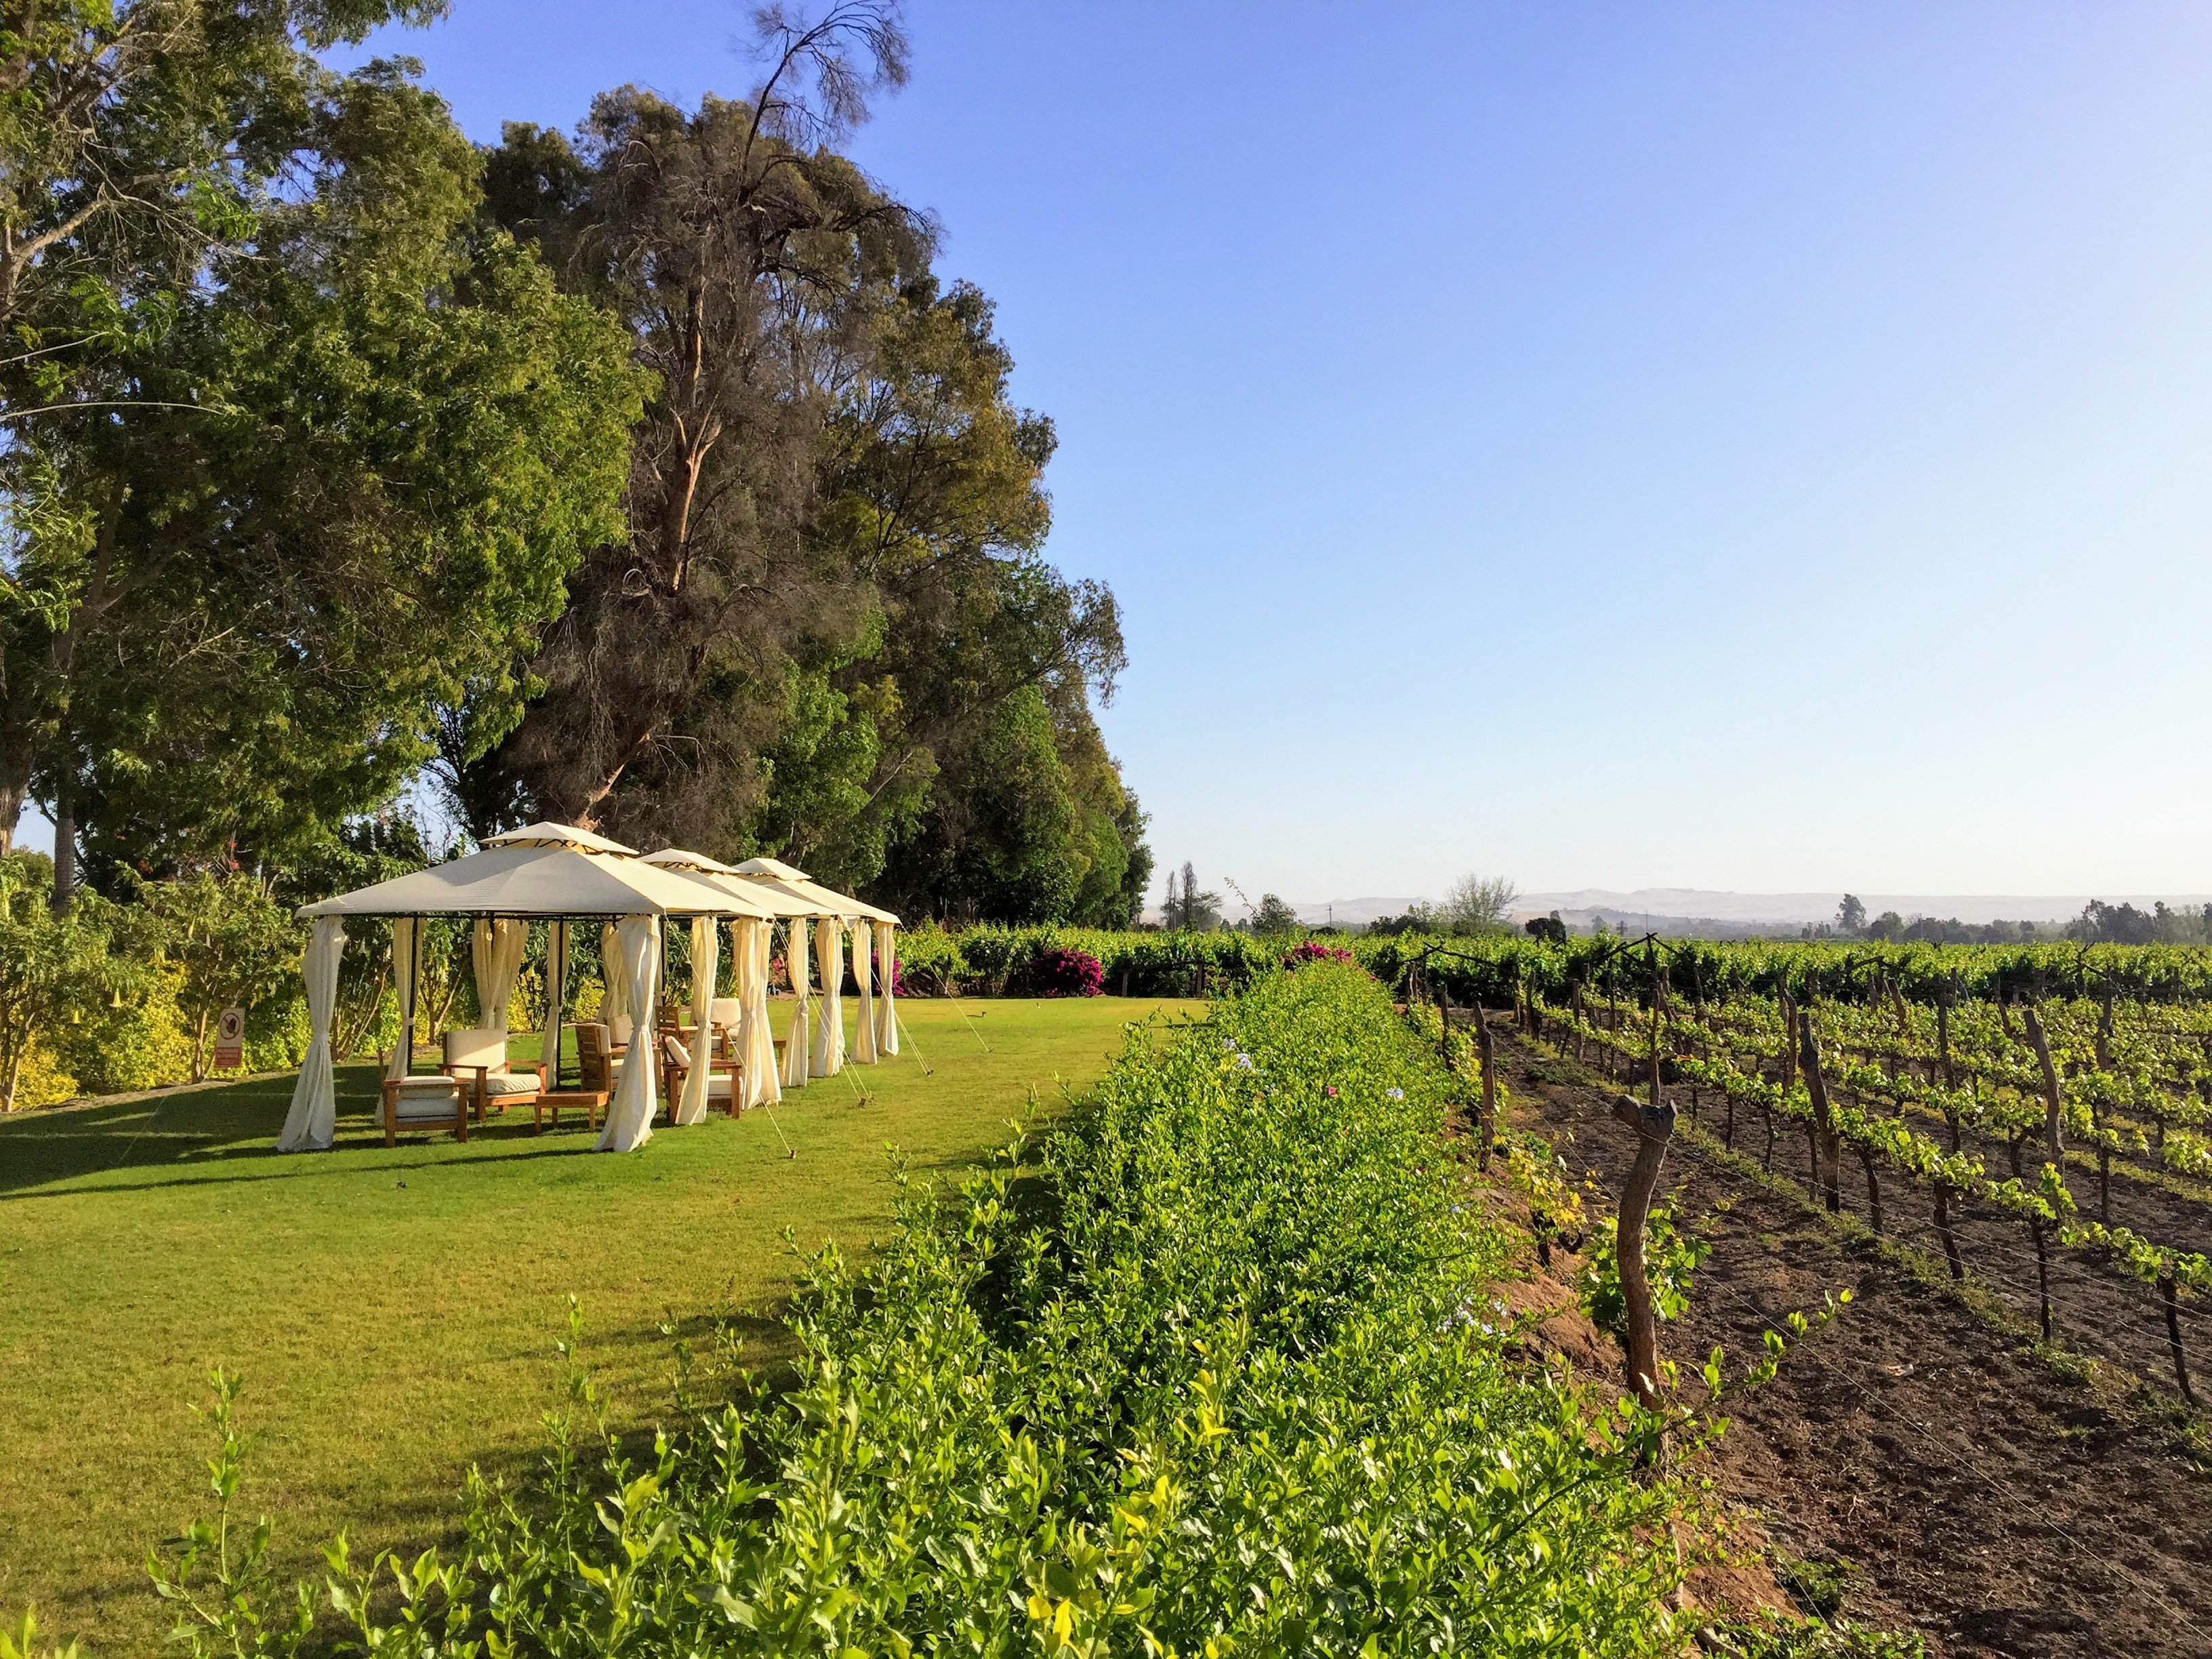 Tacama Winery, the oldest winery in the Americas